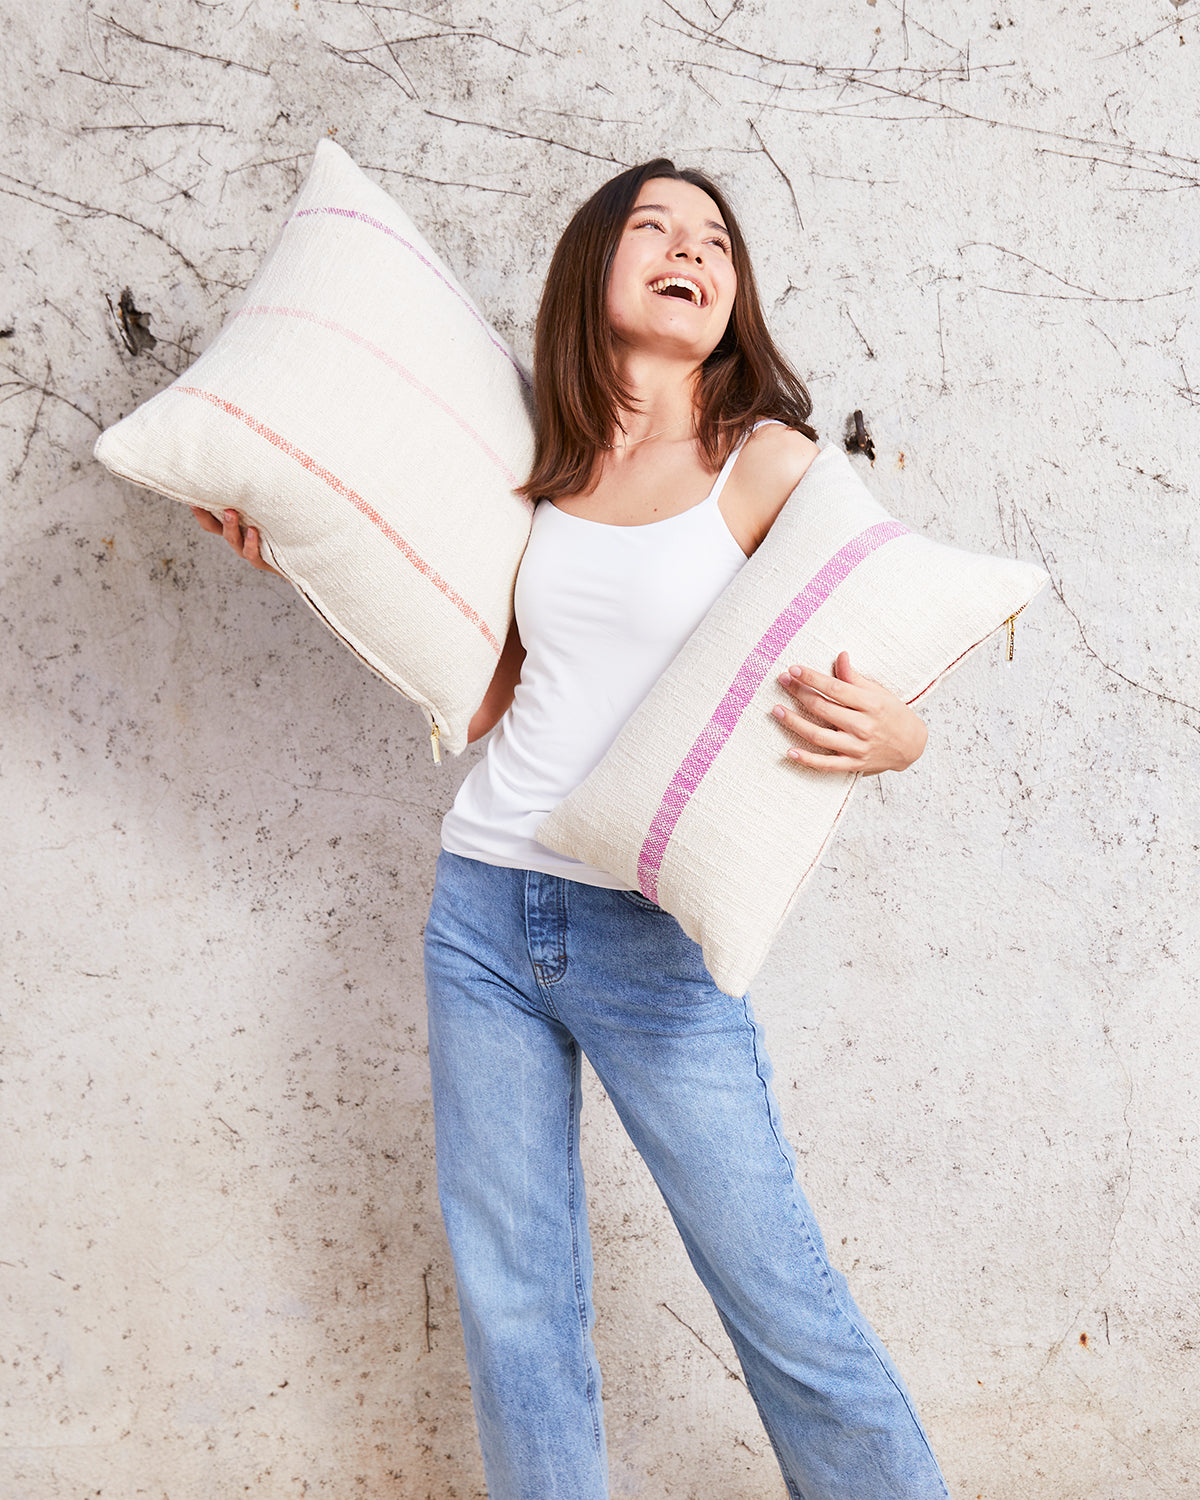 woman holding two striped pillows